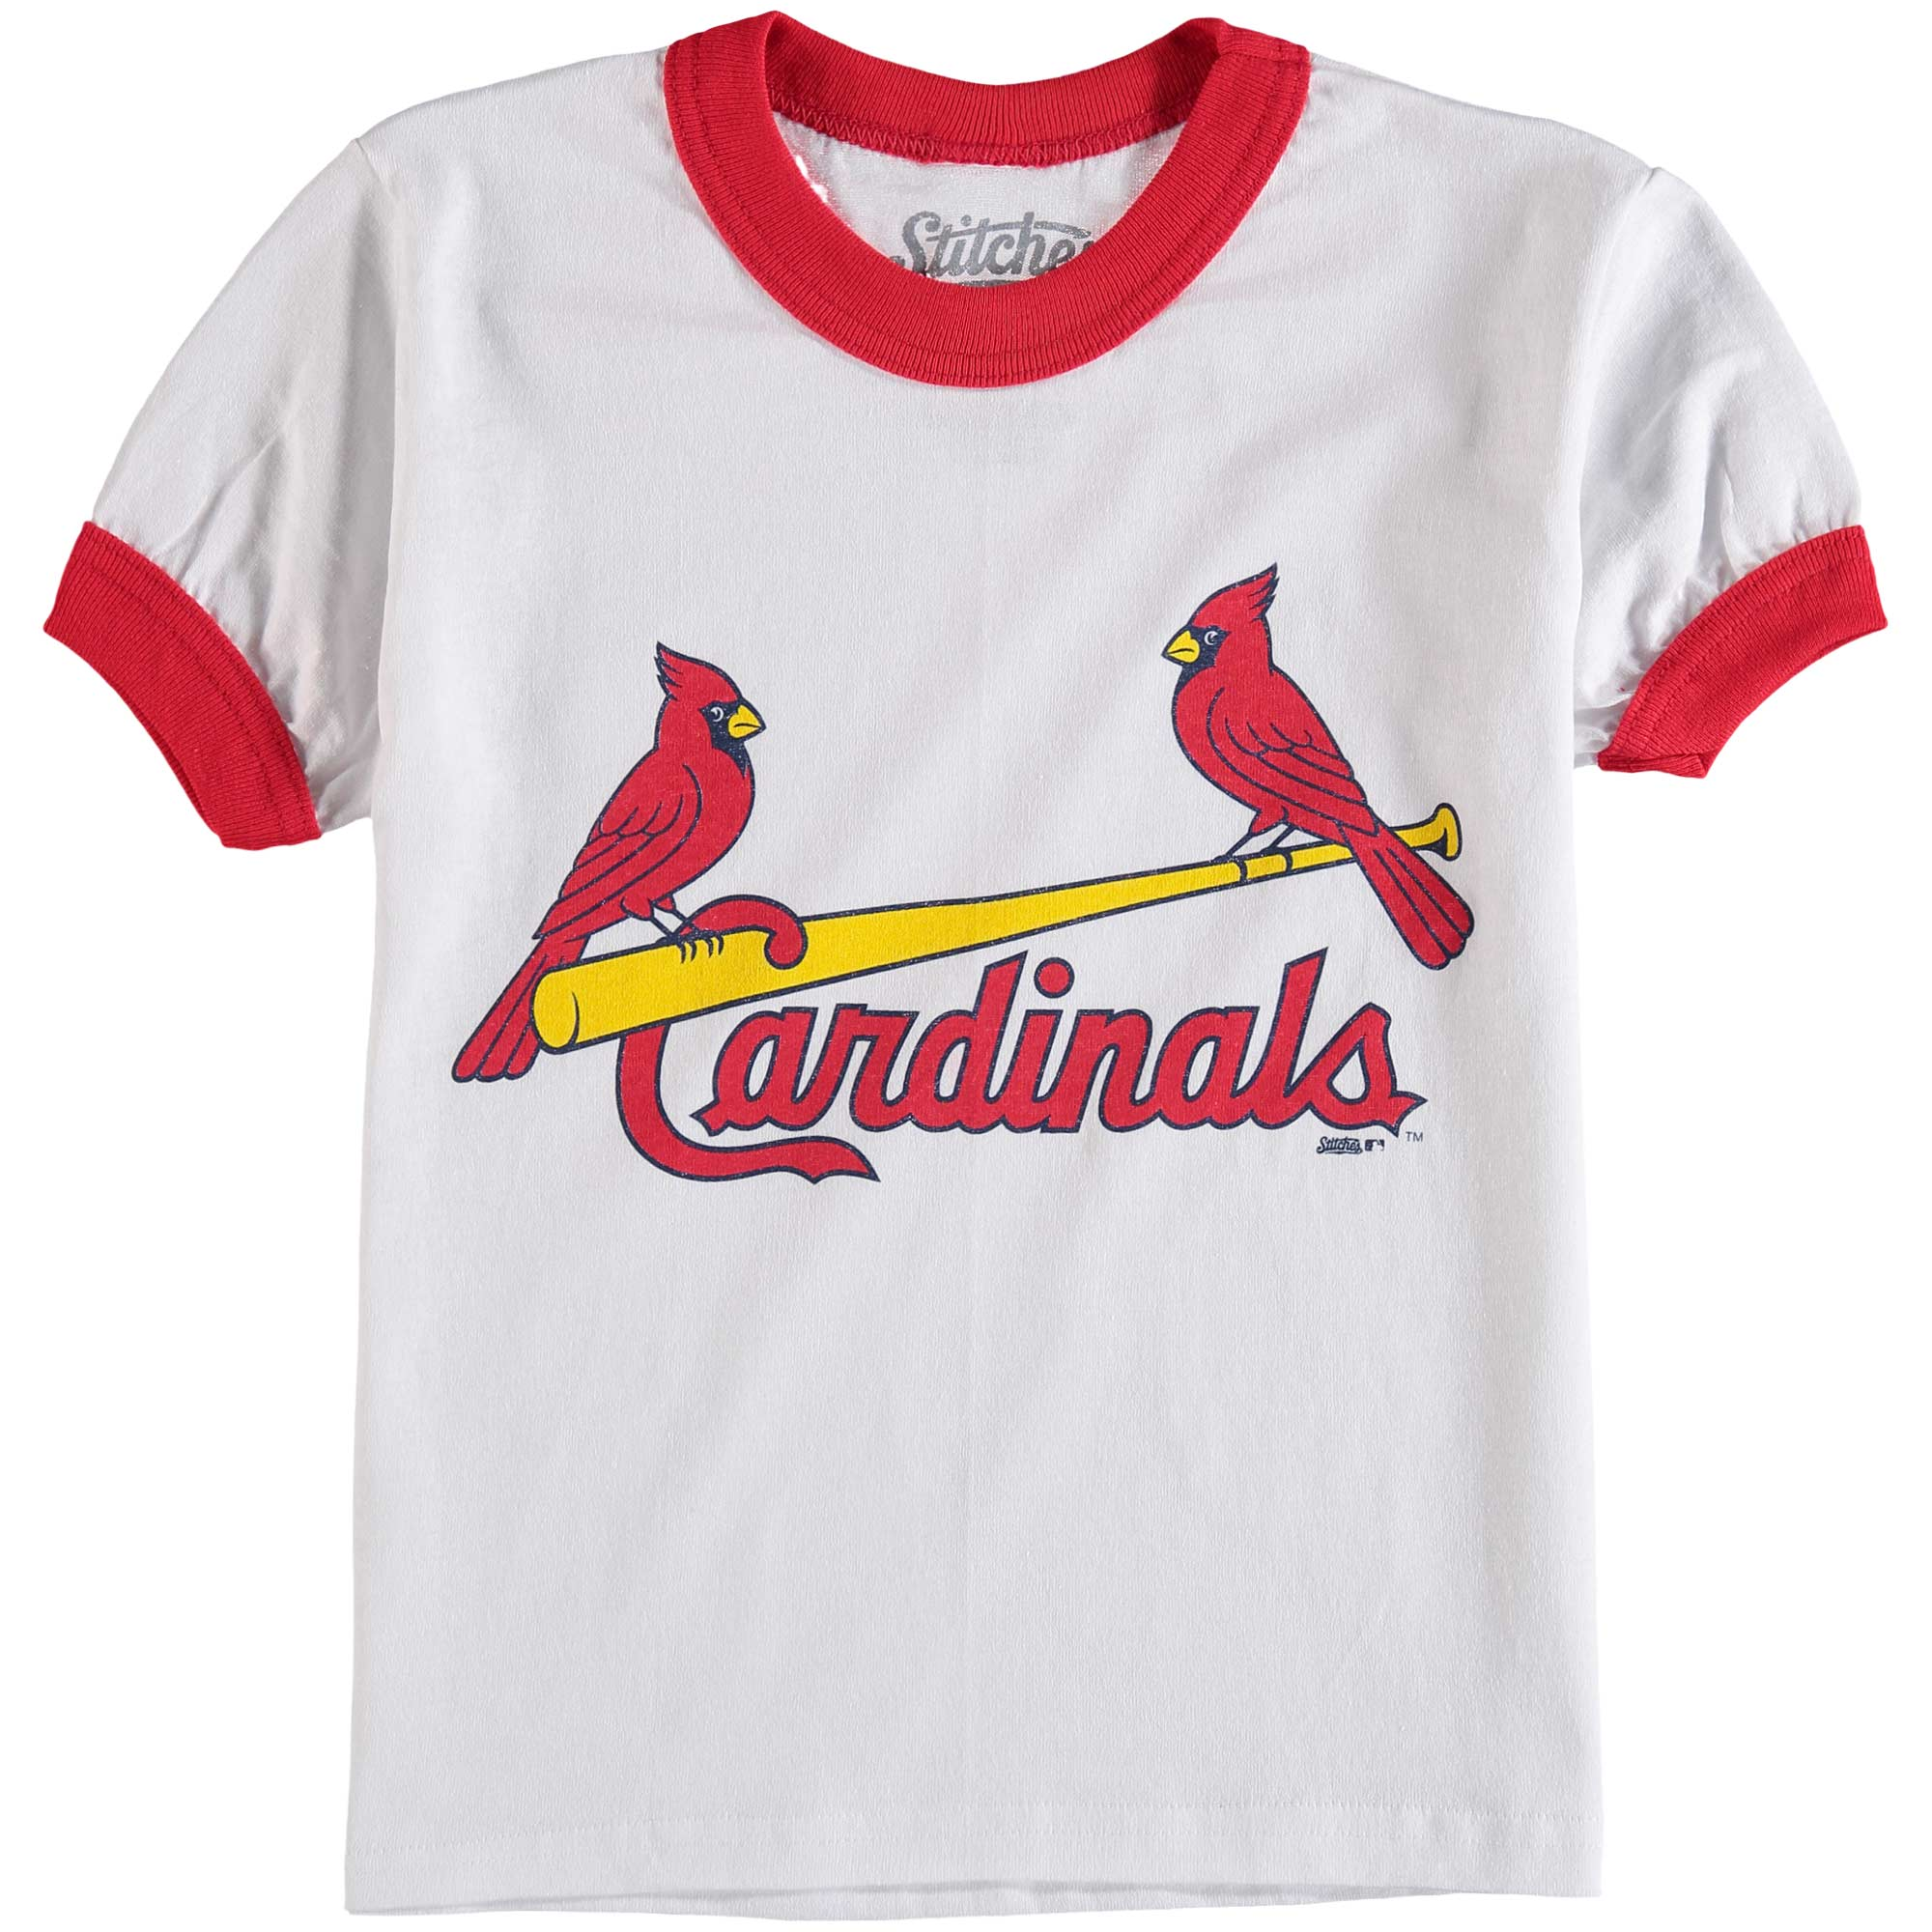 St. Louis Cardinals Stitches Youth Ringer T-Shirt - White/Red